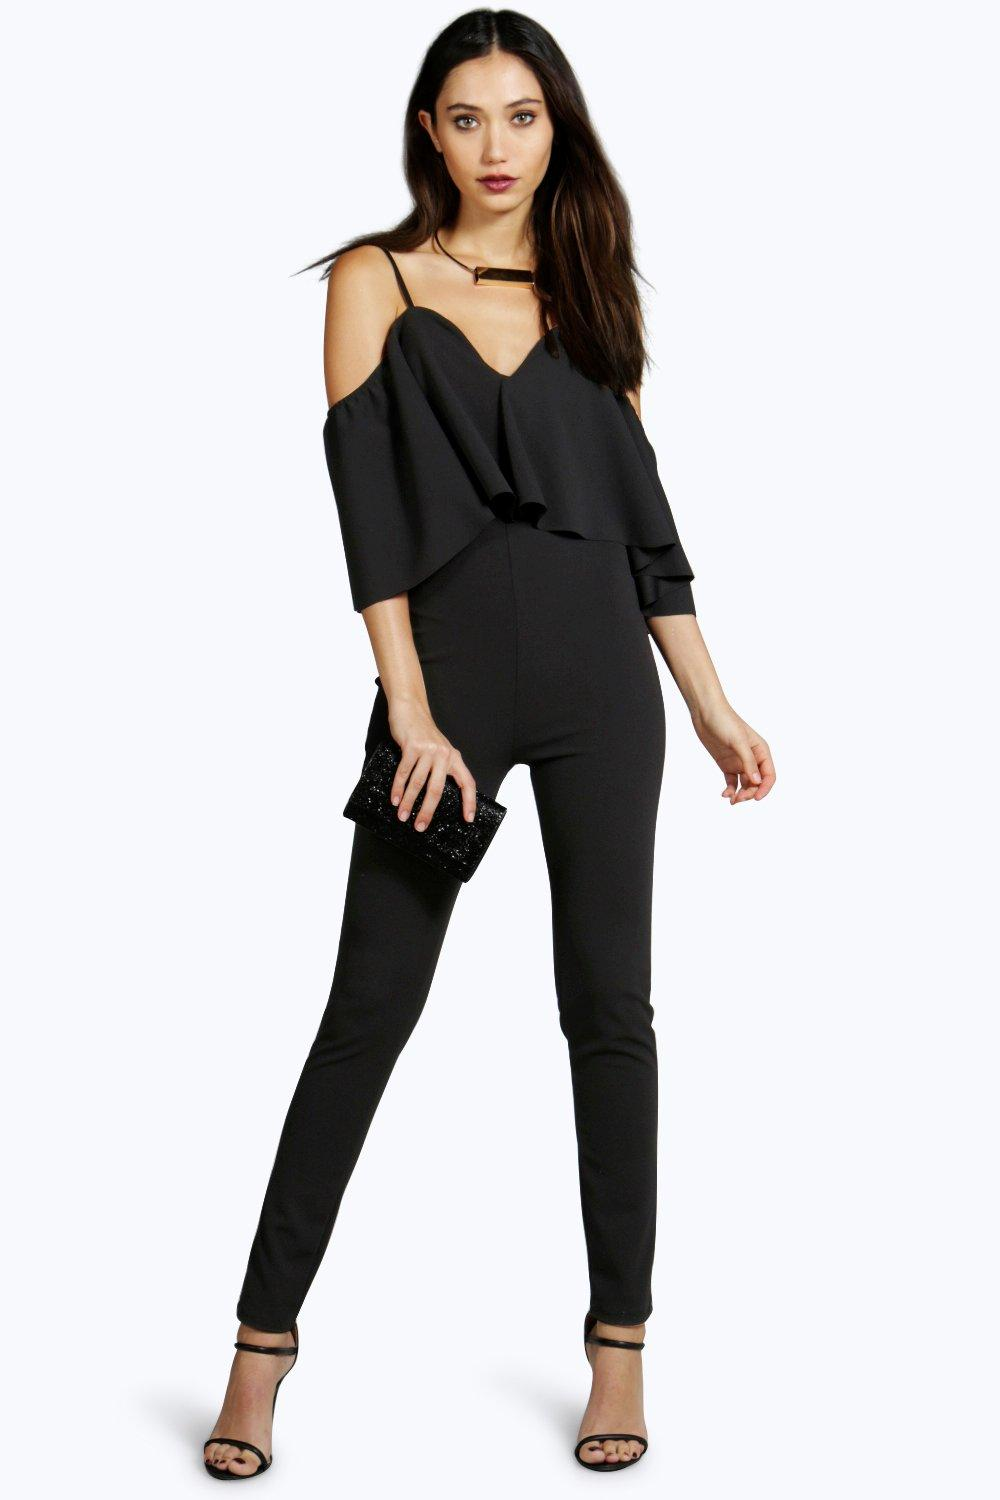 d020fa1568 Andrea Cape Style Jumpsuit. Hover to zoom